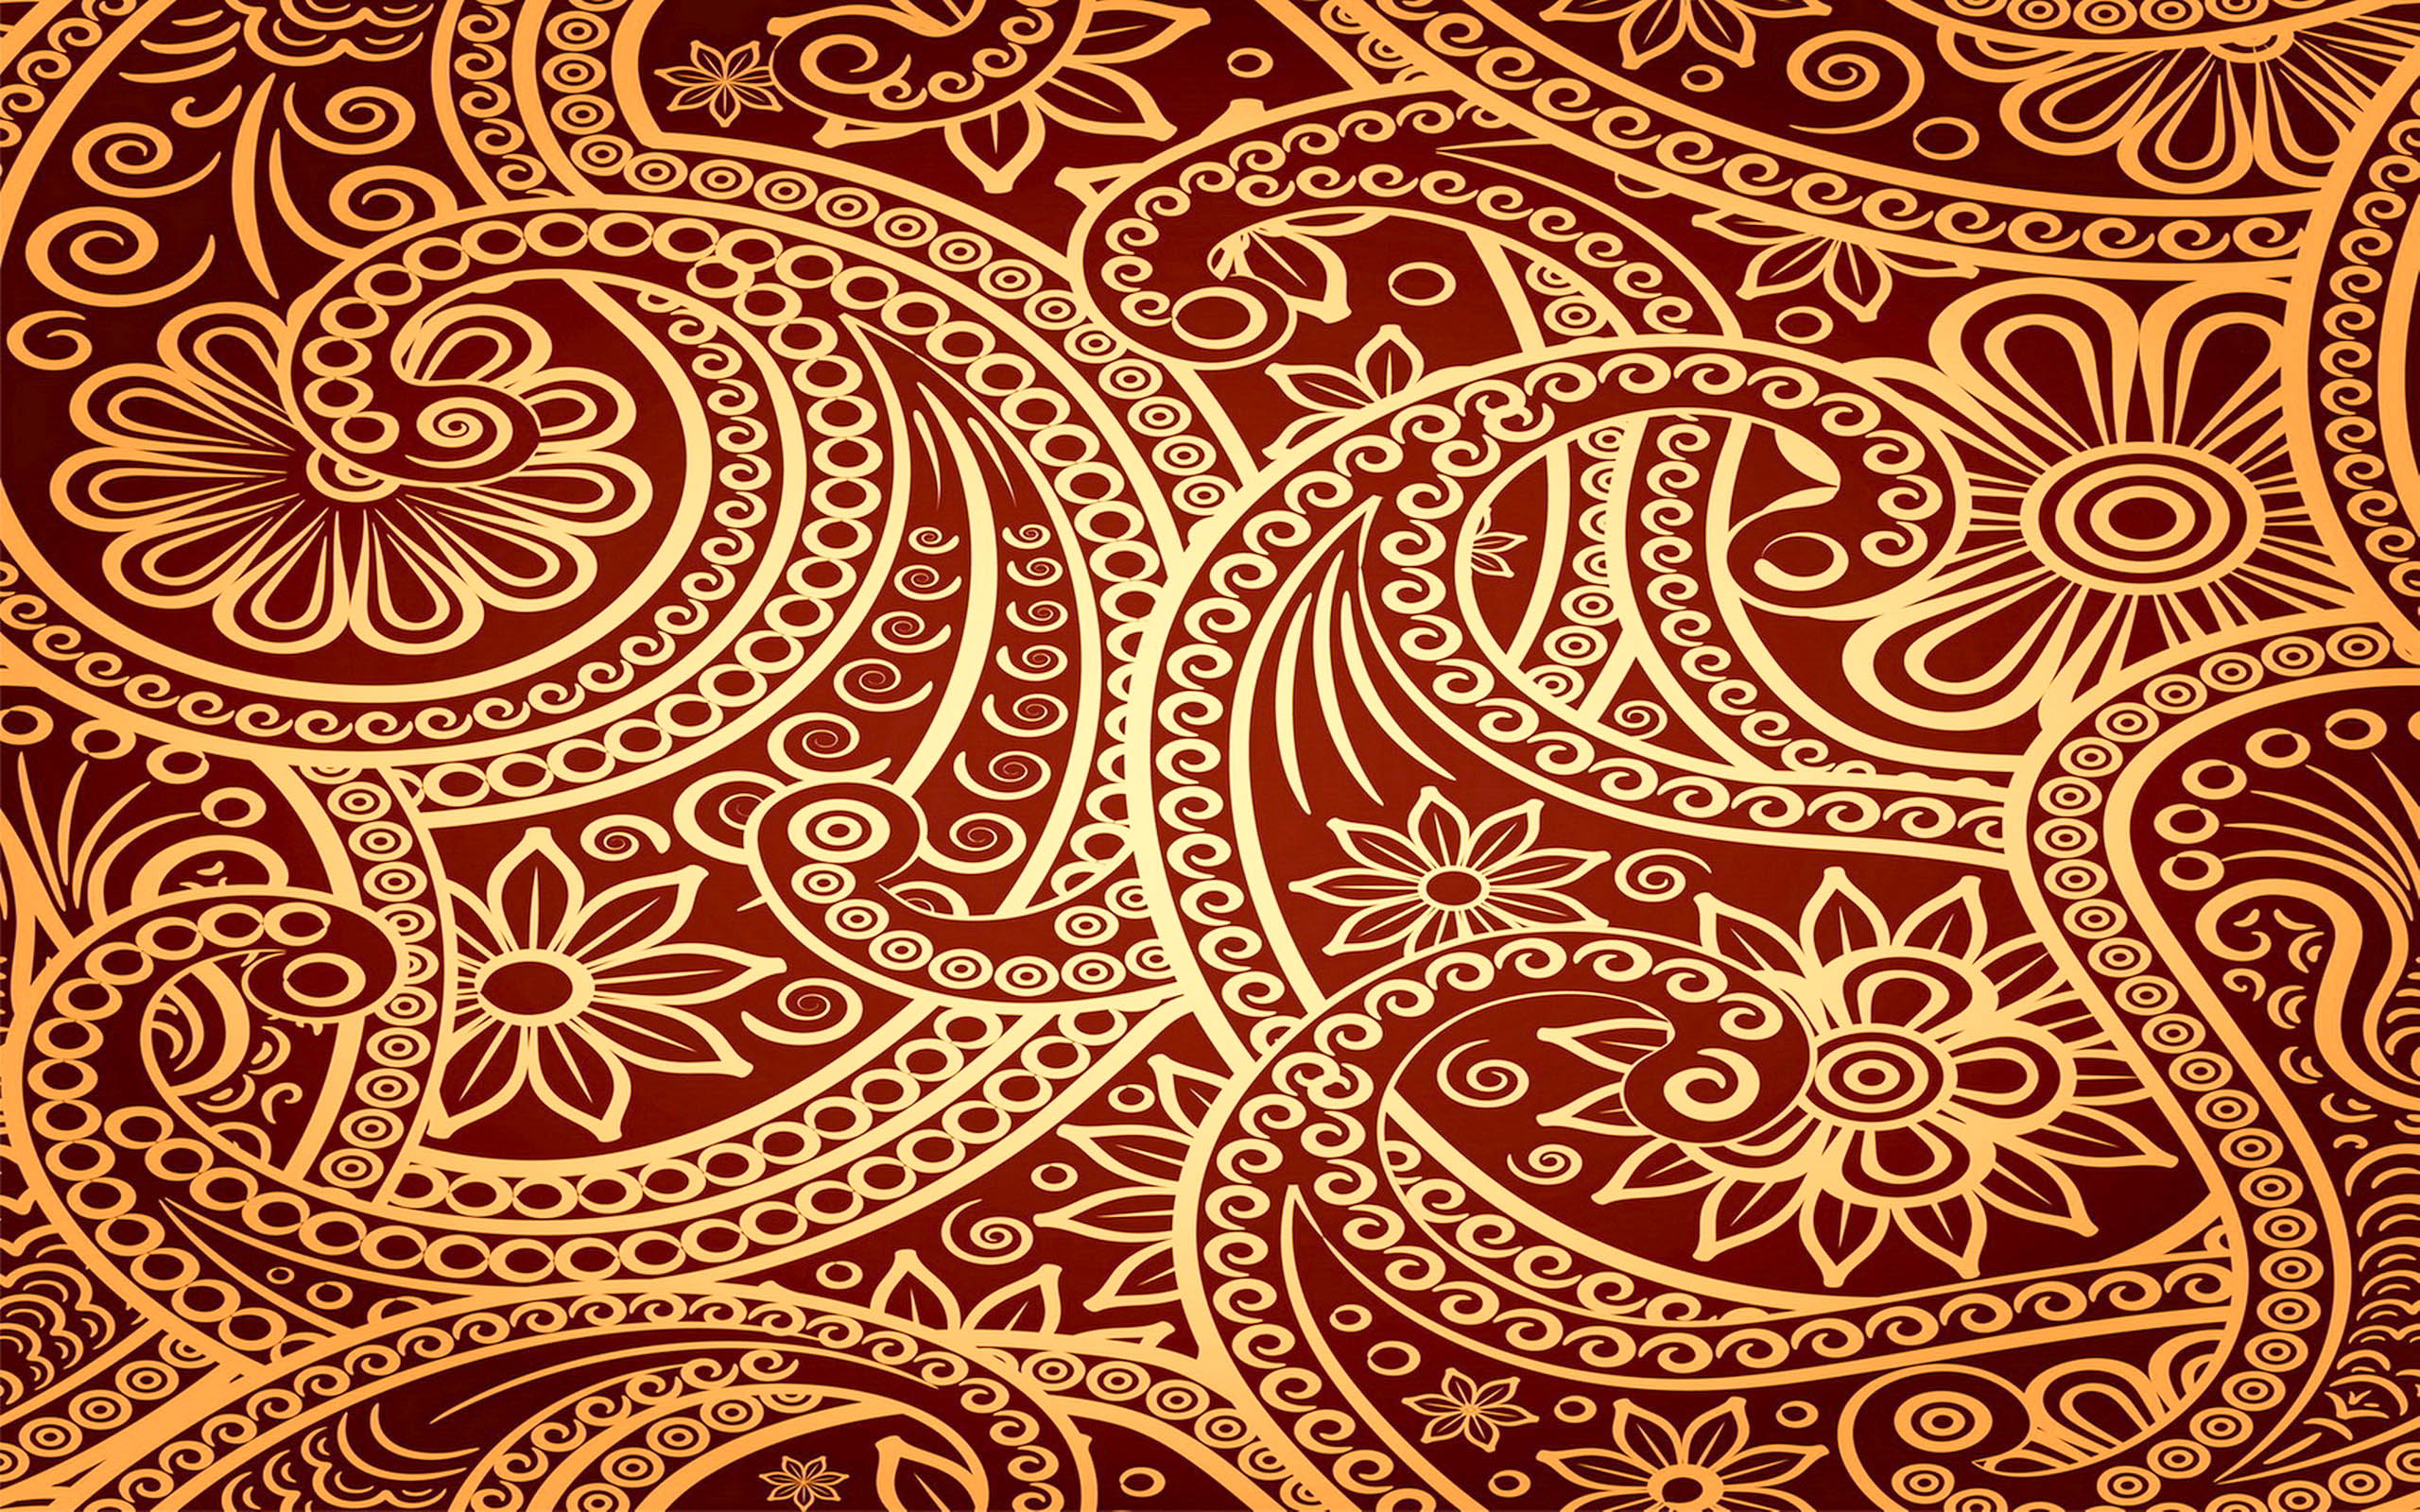 ornamental wallpapers images and hd wallpapers in high